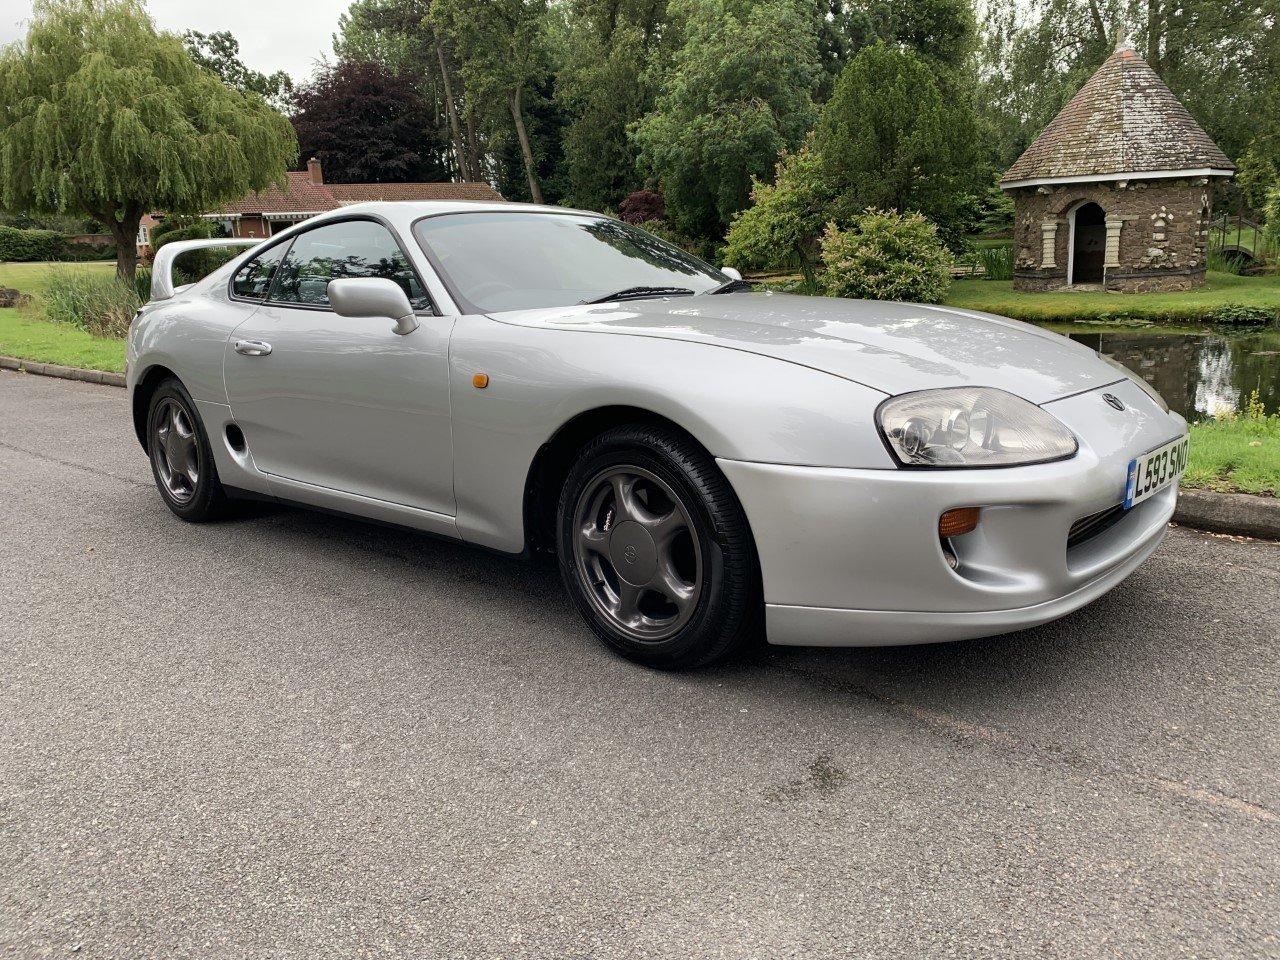 1994 toyota supra twin turbo auto 43k 1 owner For Sale (picture 1 of 6)